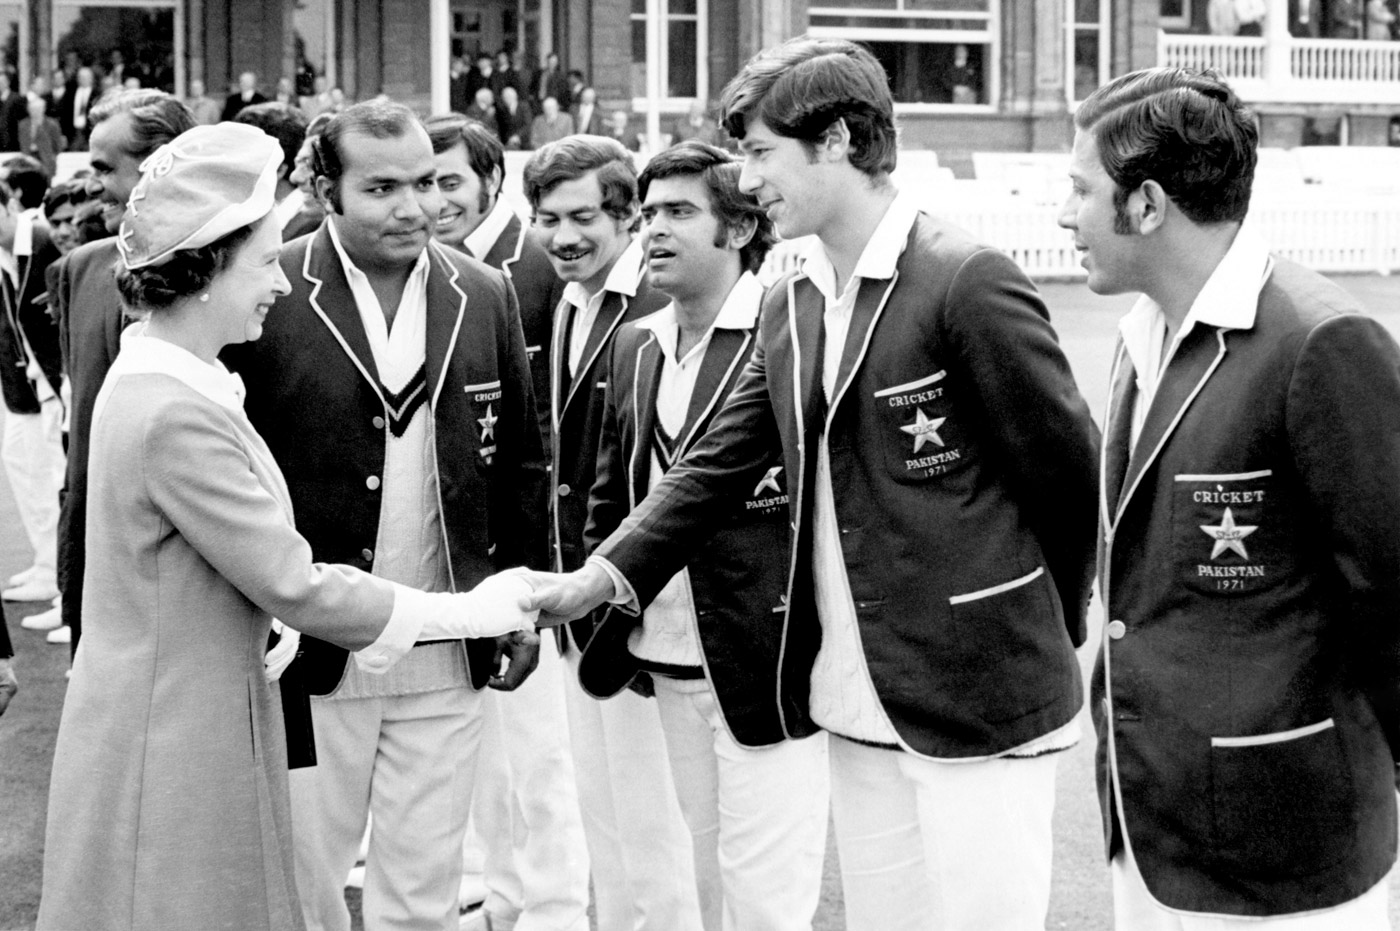 Pakistan captain Intikhab Alam introduces Imran to the Queen at Lord's